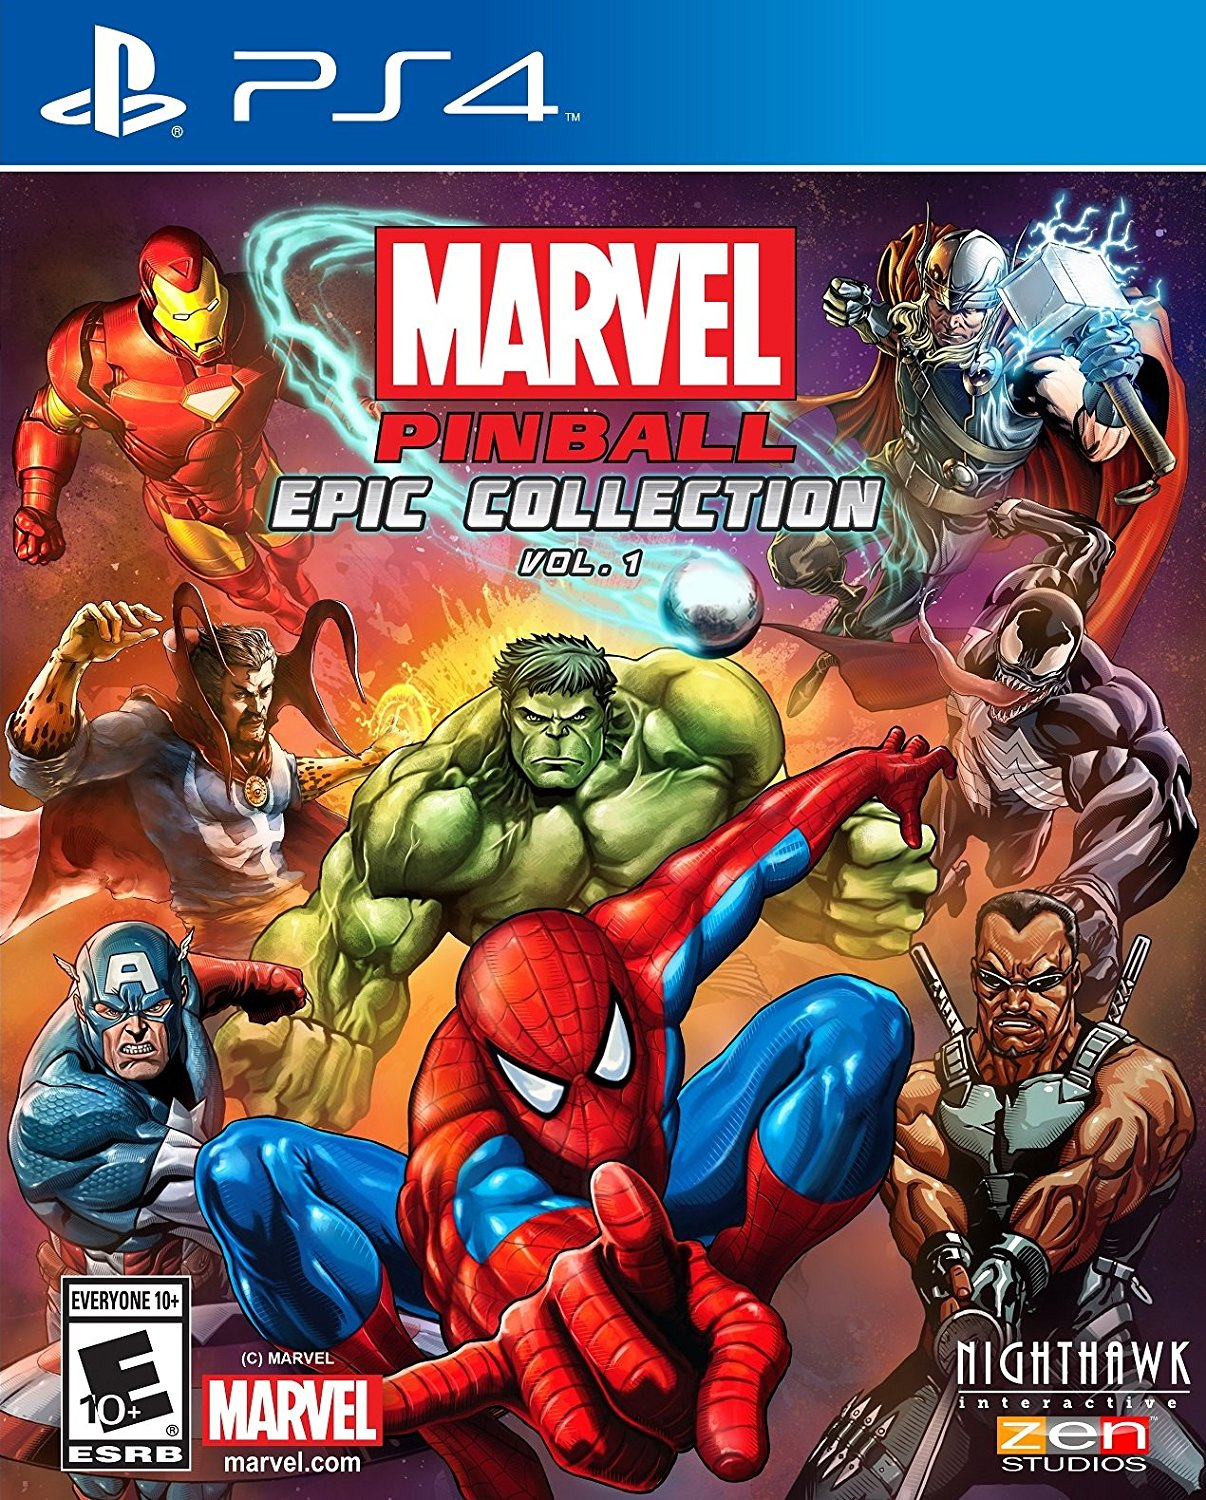 marvel pinball: epic collection volume 1 coming to ps4/xbox one